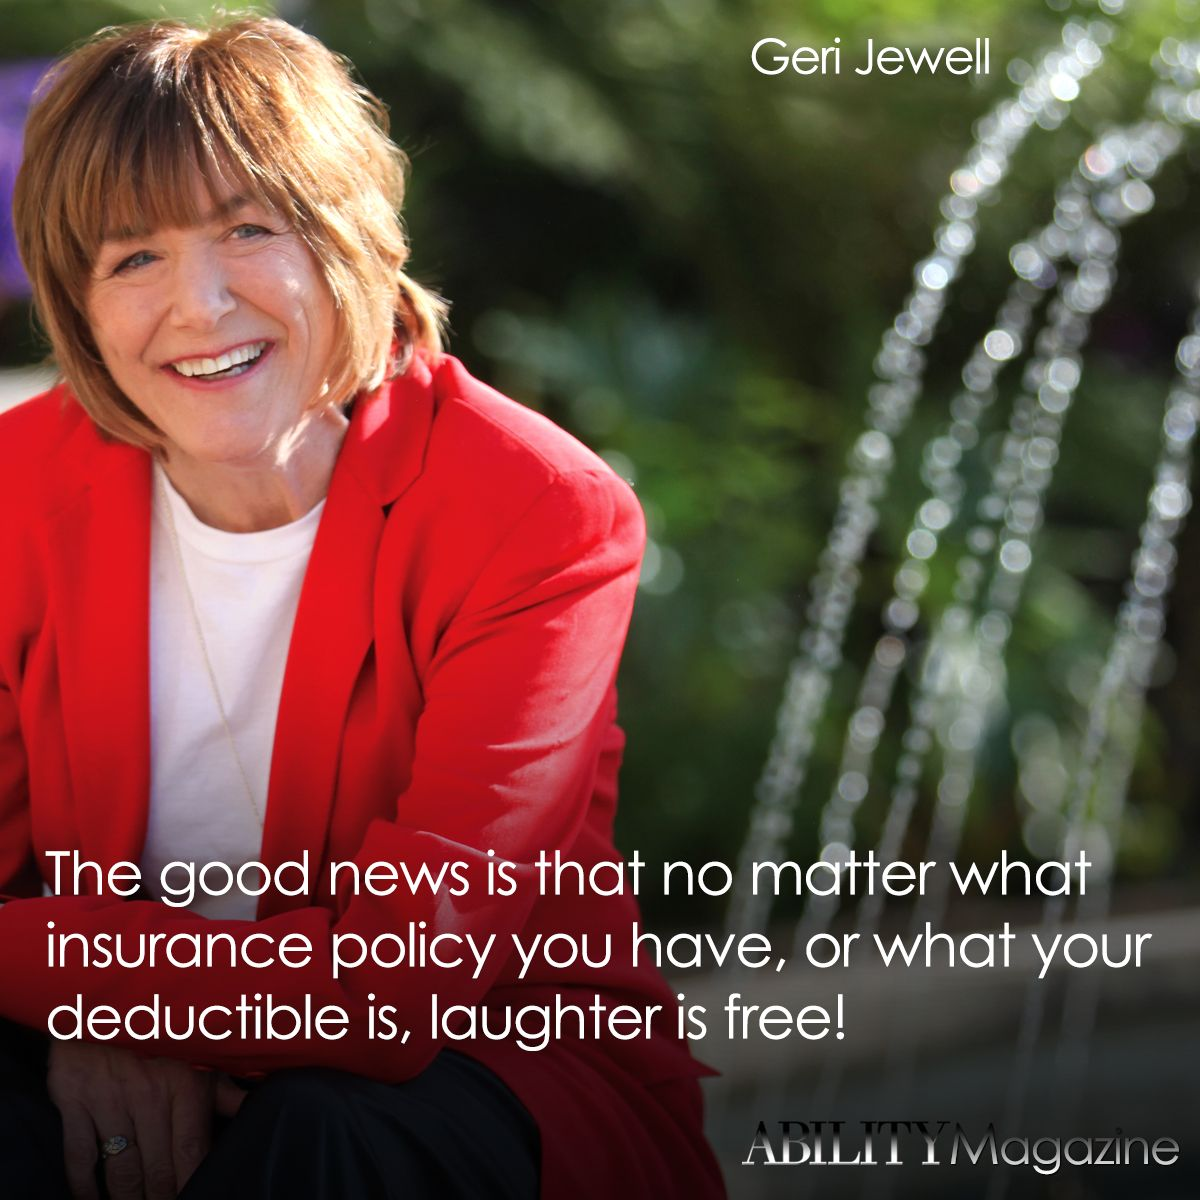 """The good news is that no matter what insurance policy you have, or what your deductible is, laughter is free!"" Geri Jewell in #ABILITYMagazine  http://www.abilitymagazine.com/subscribe.html"